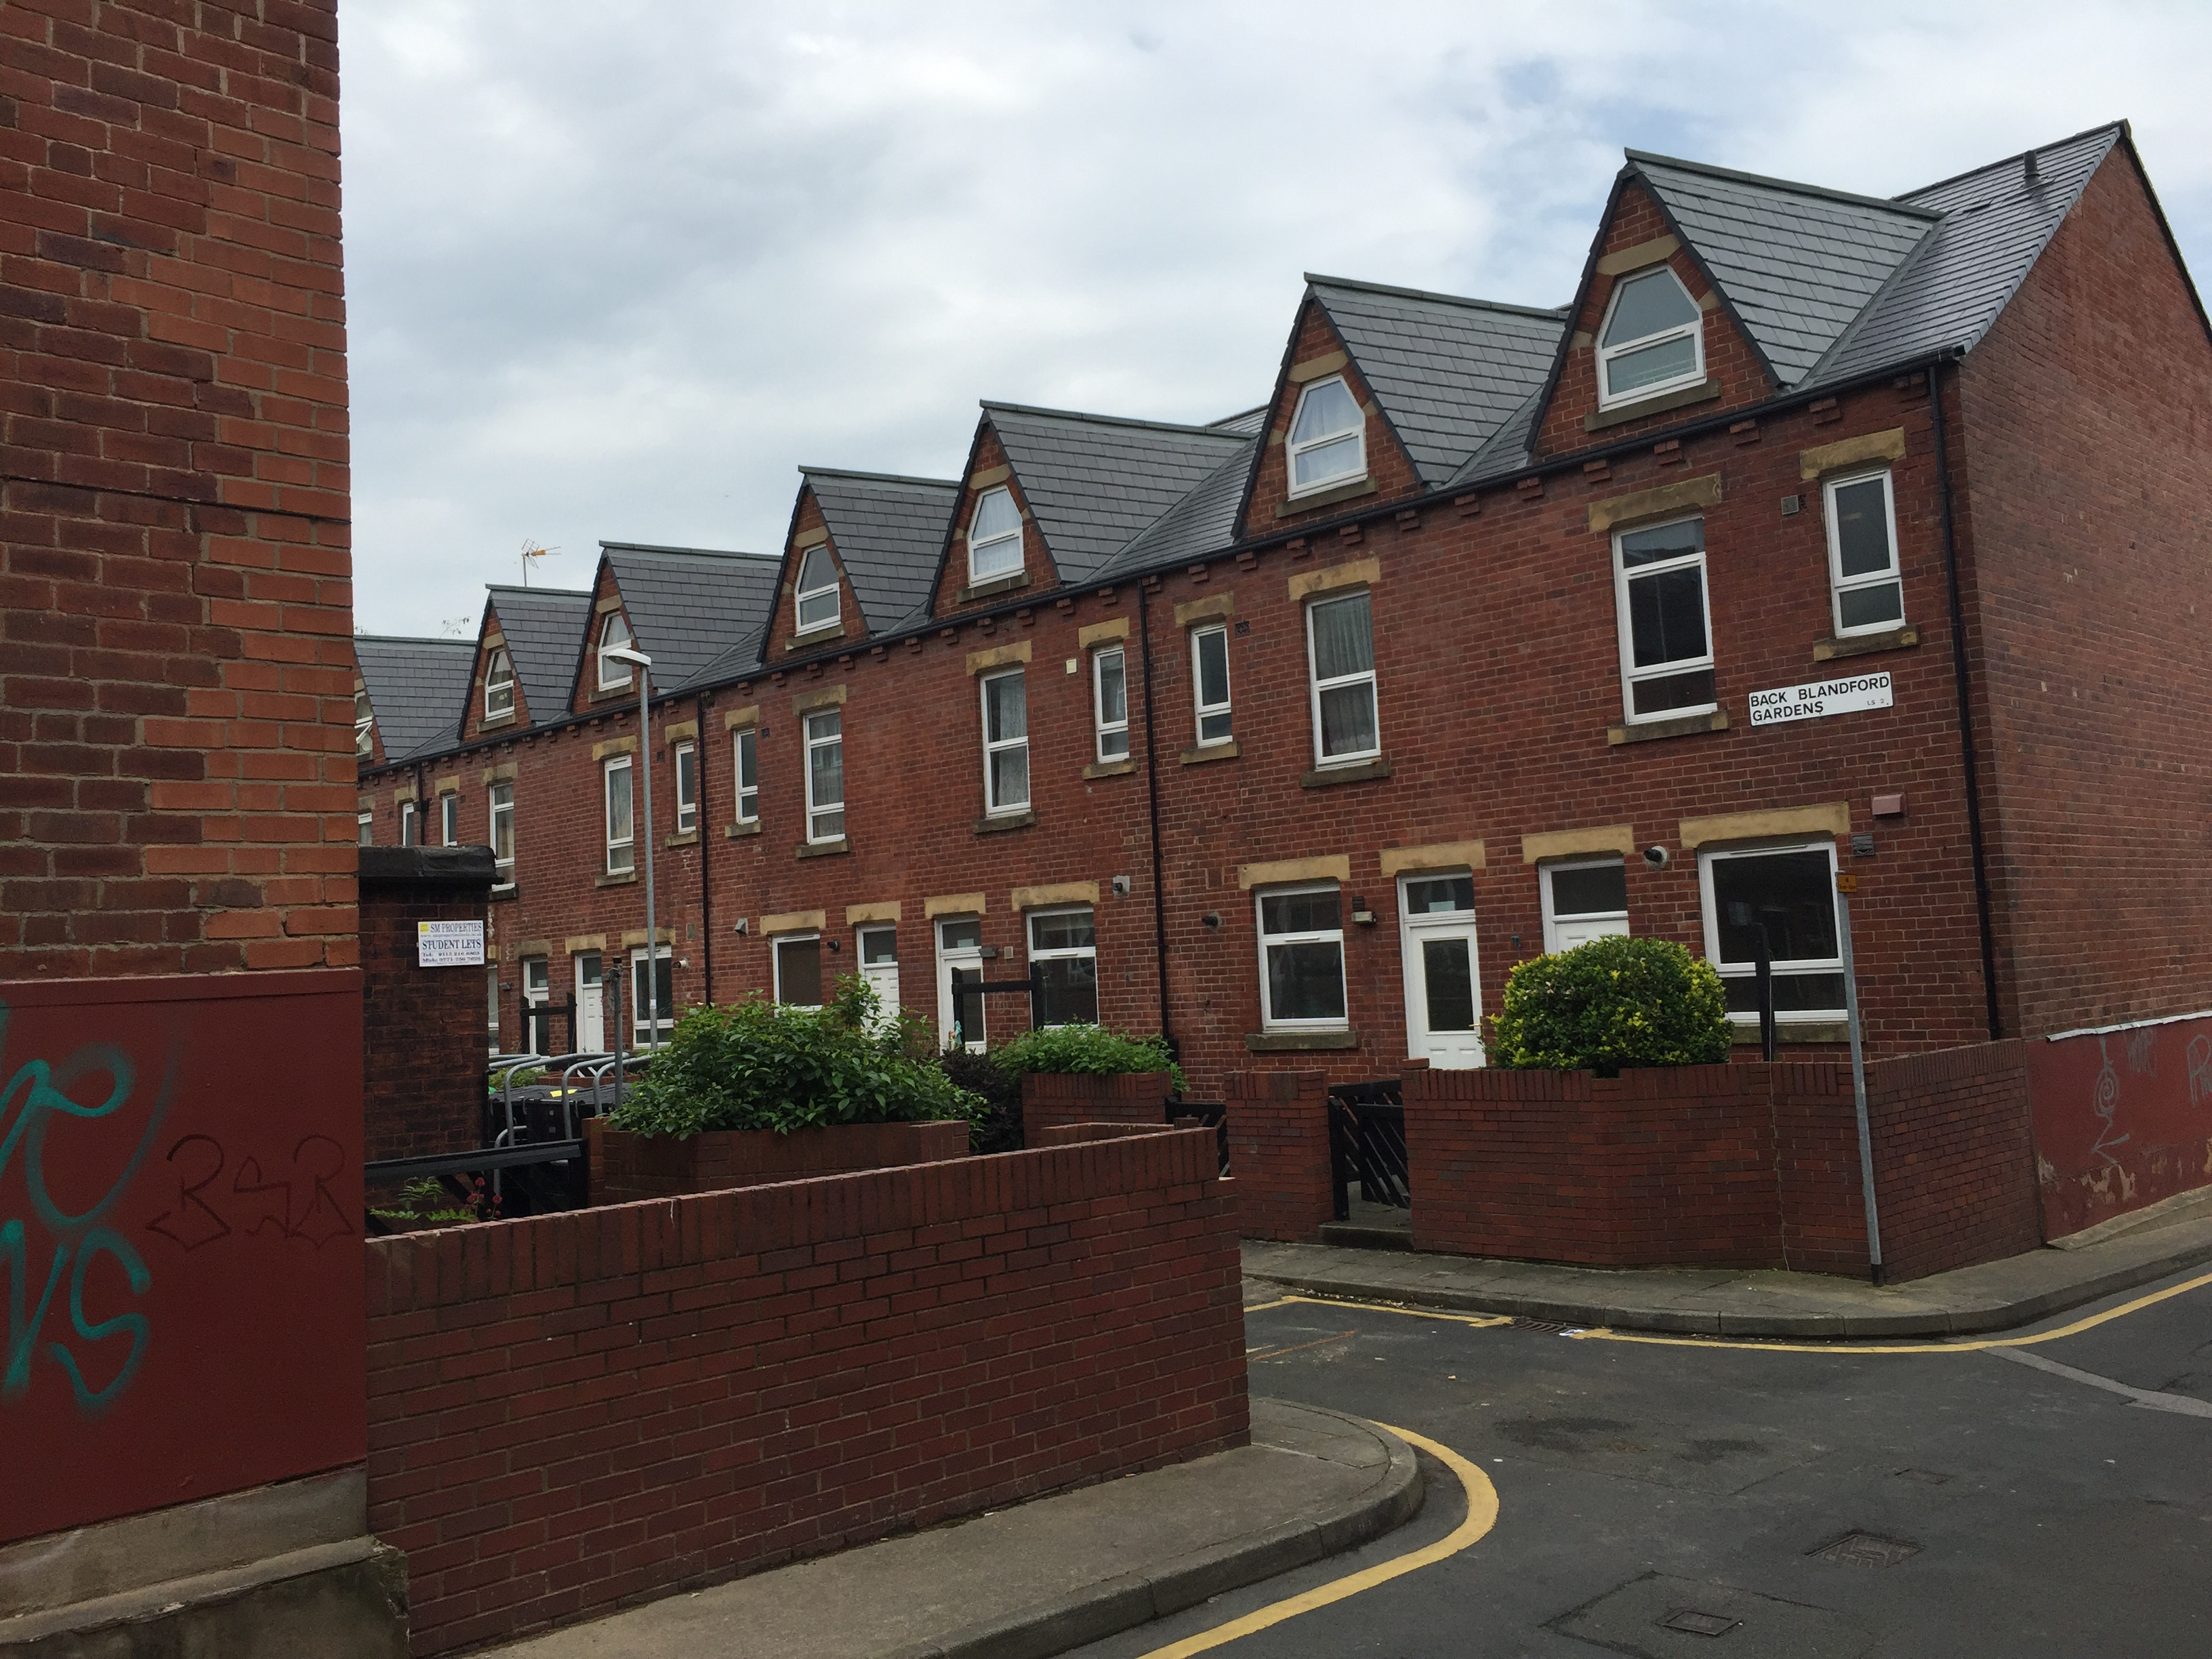 Leeds Federated Housing